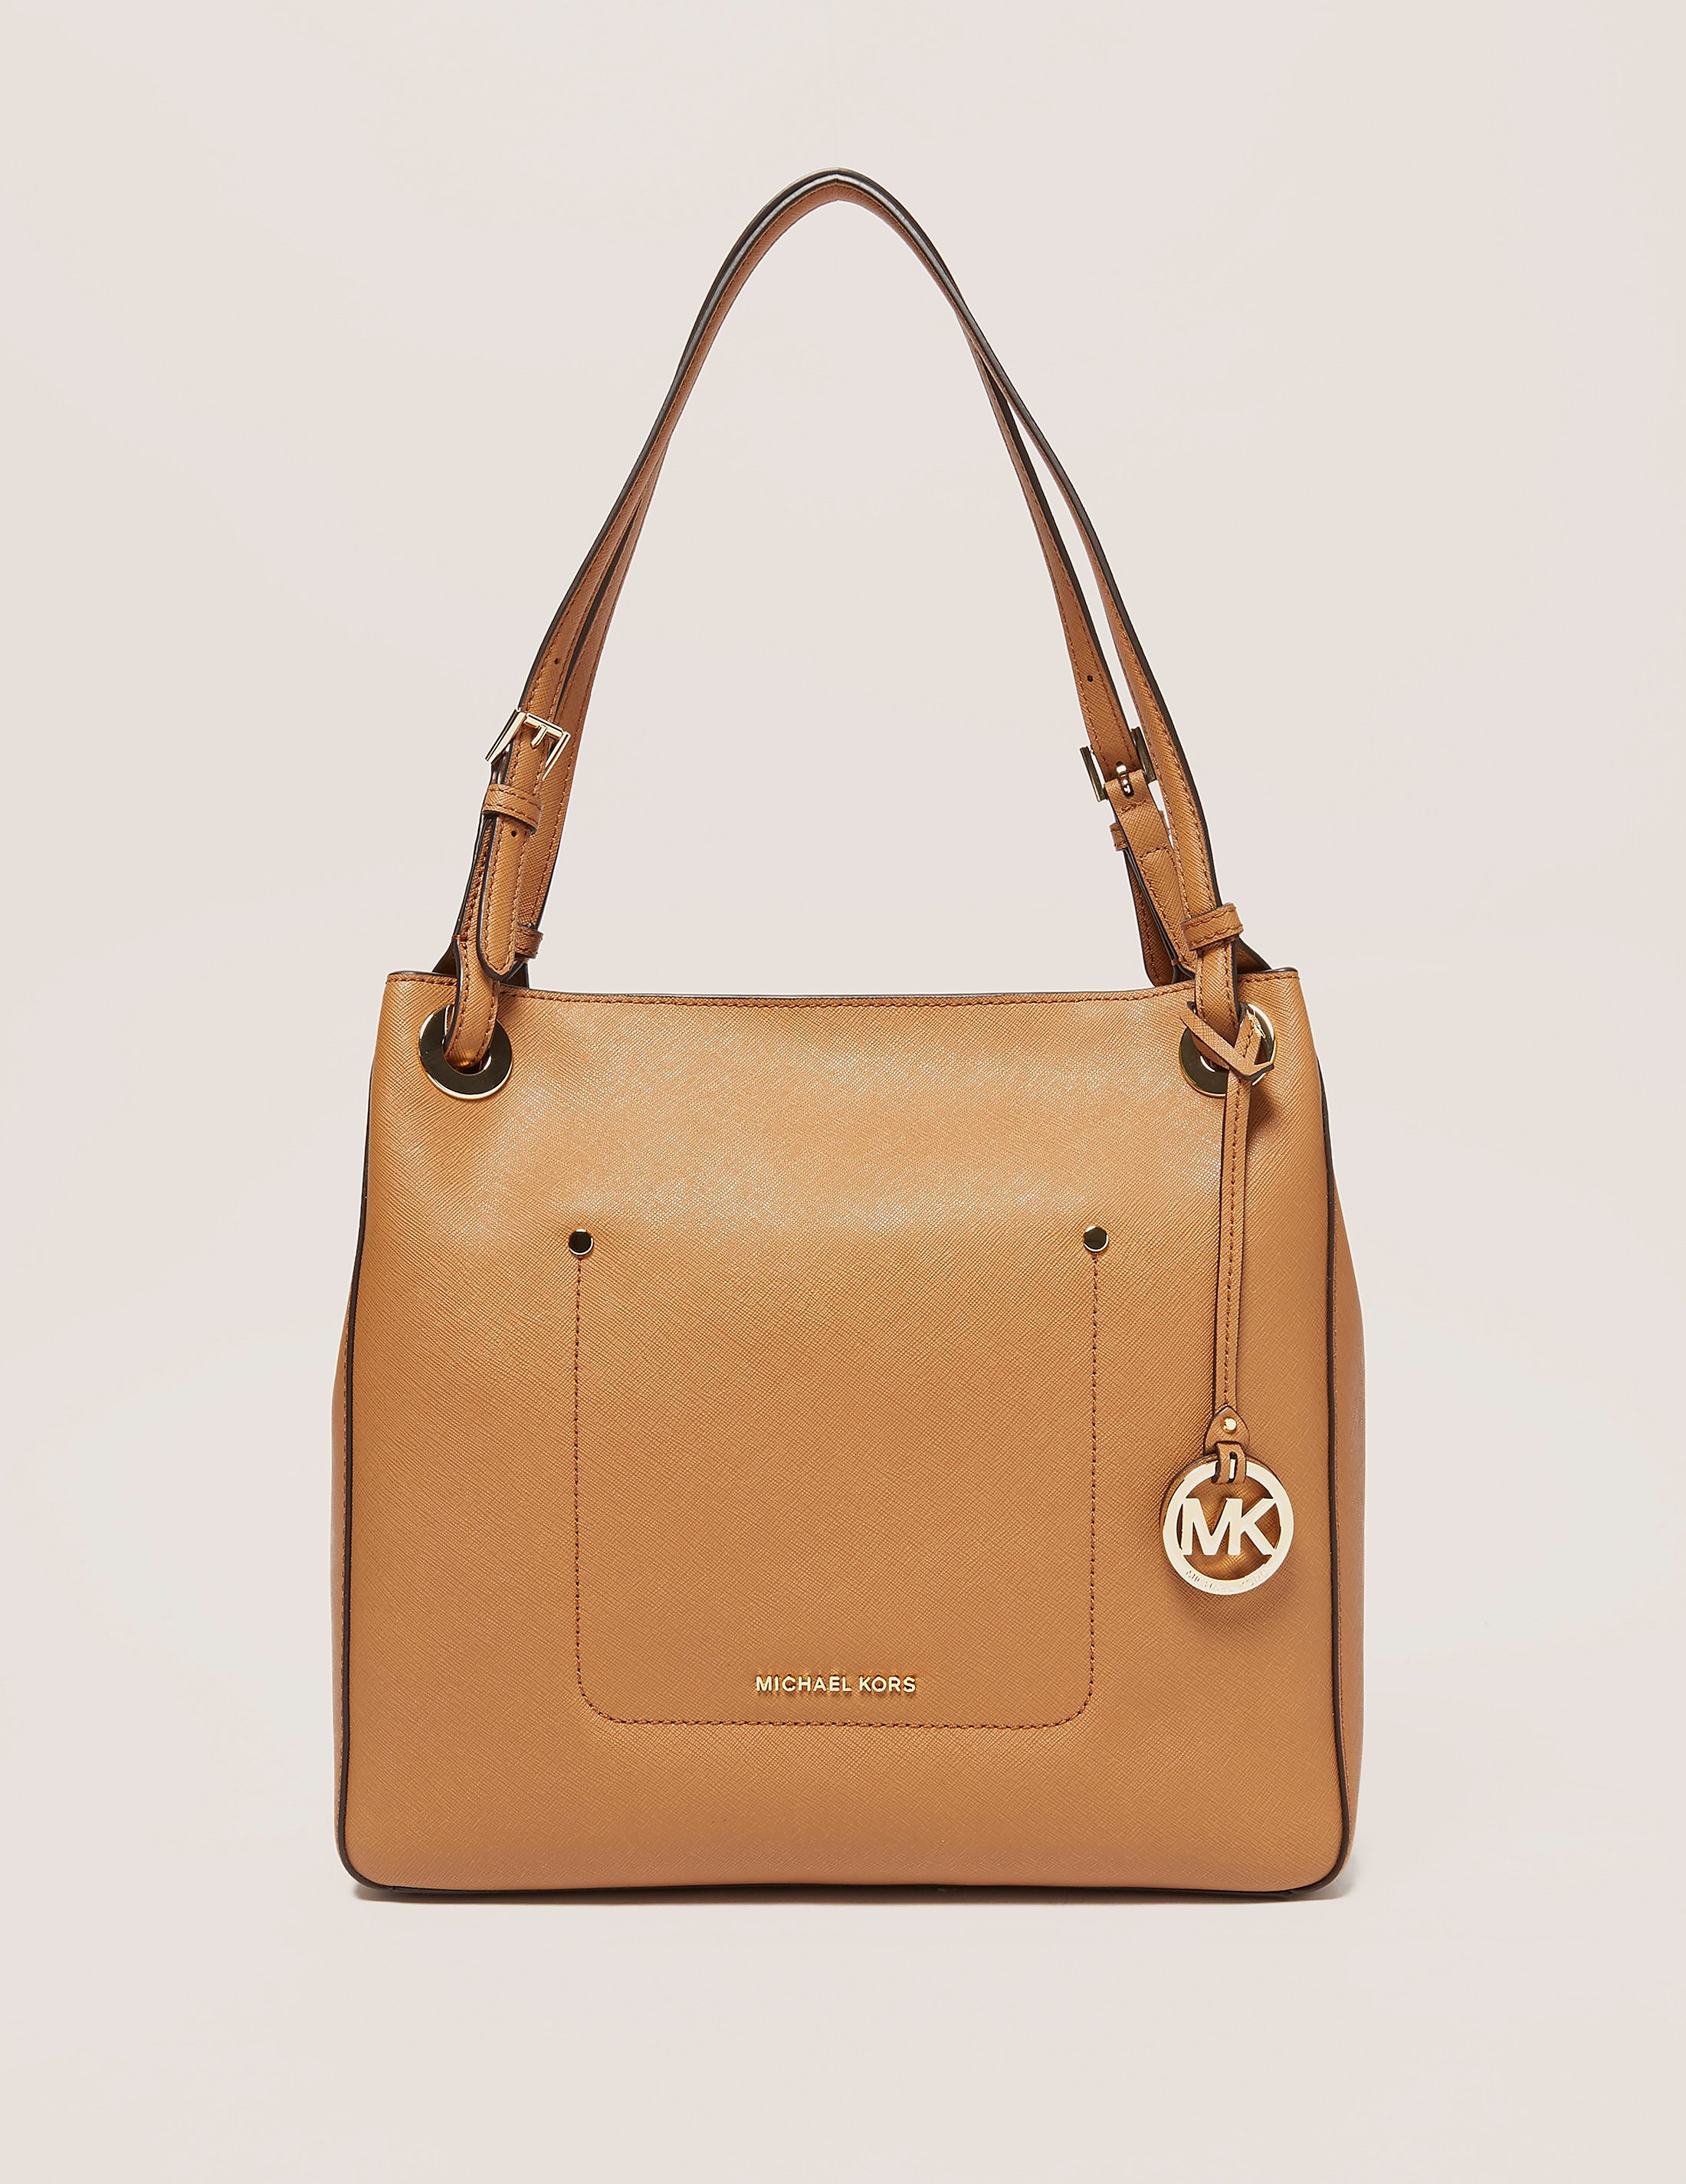 Michael Kors Walsh Medium Shoulder Tote